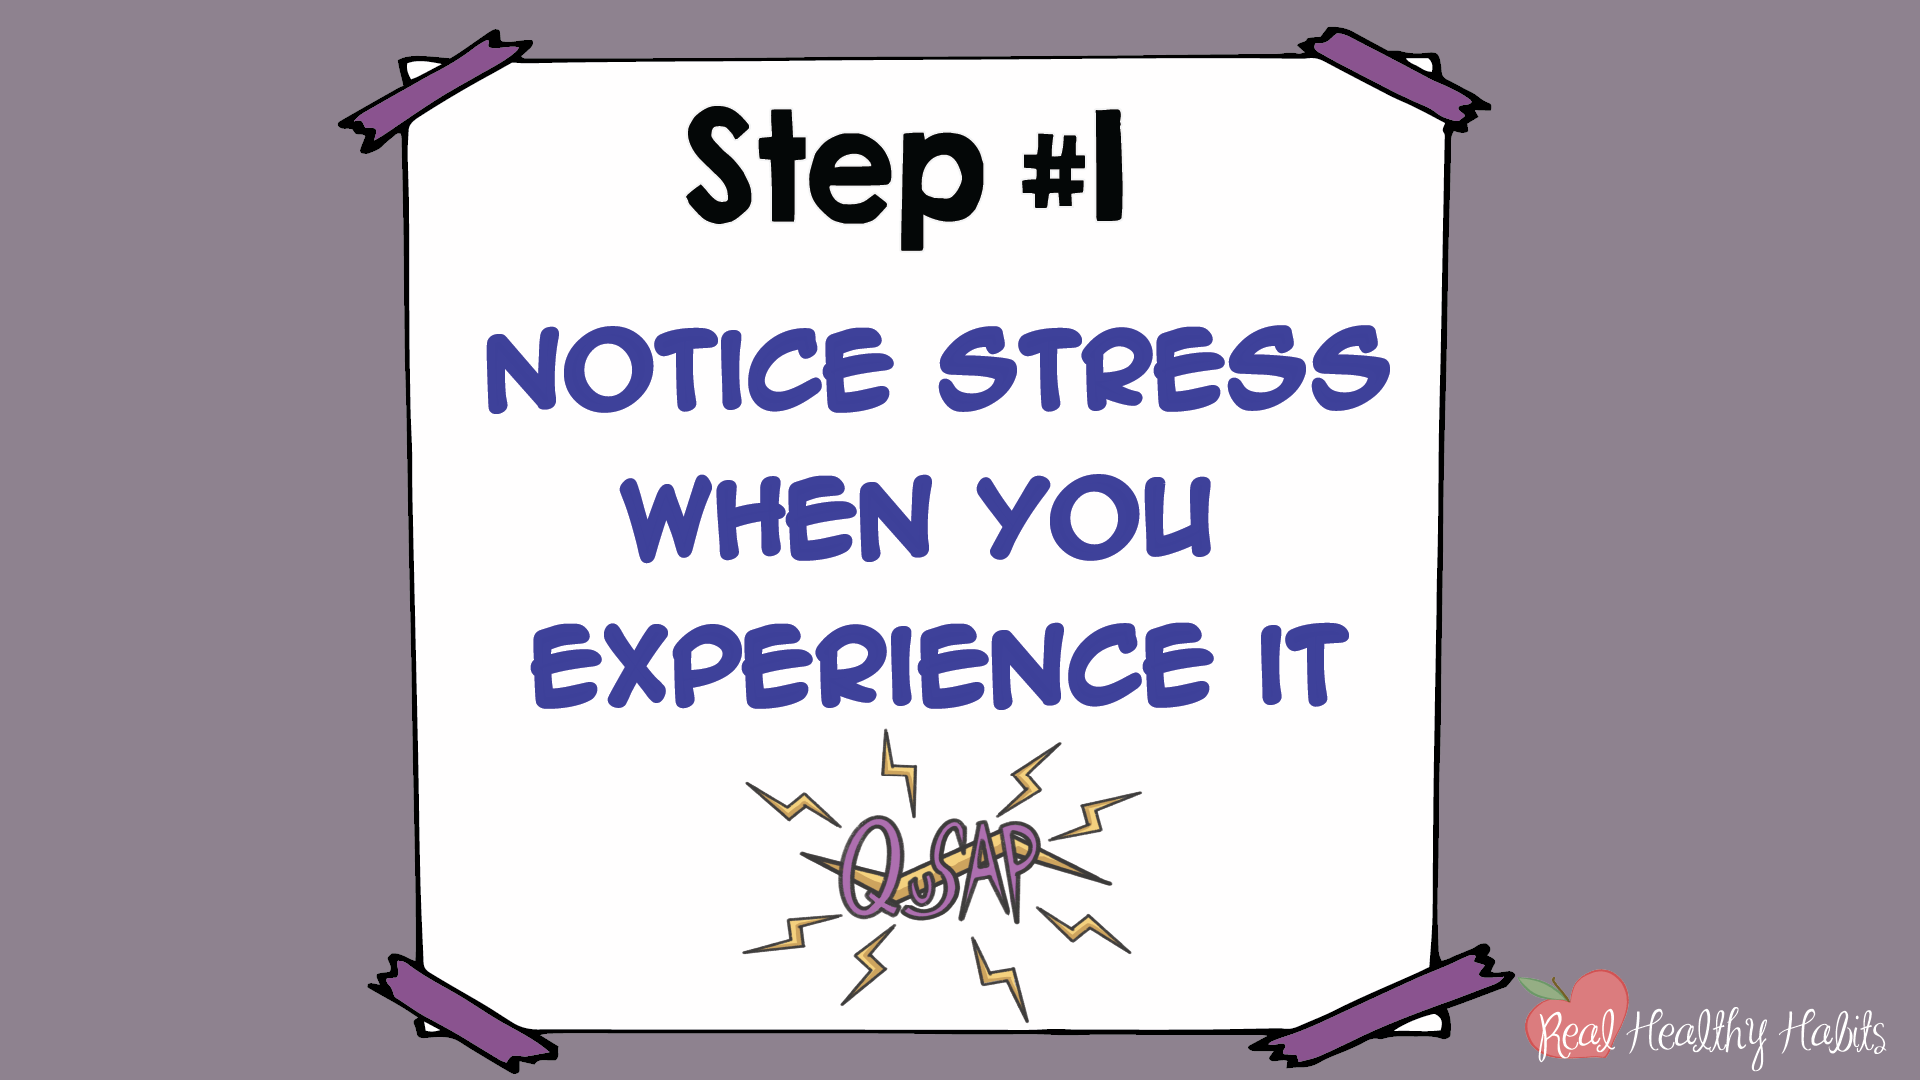 Step 1 of the Quick Stress Action Plan | How to Make Stress Your Superpower: Transform Your Stress with This Easy One Minute Habit | www.realhealthyhabits.com